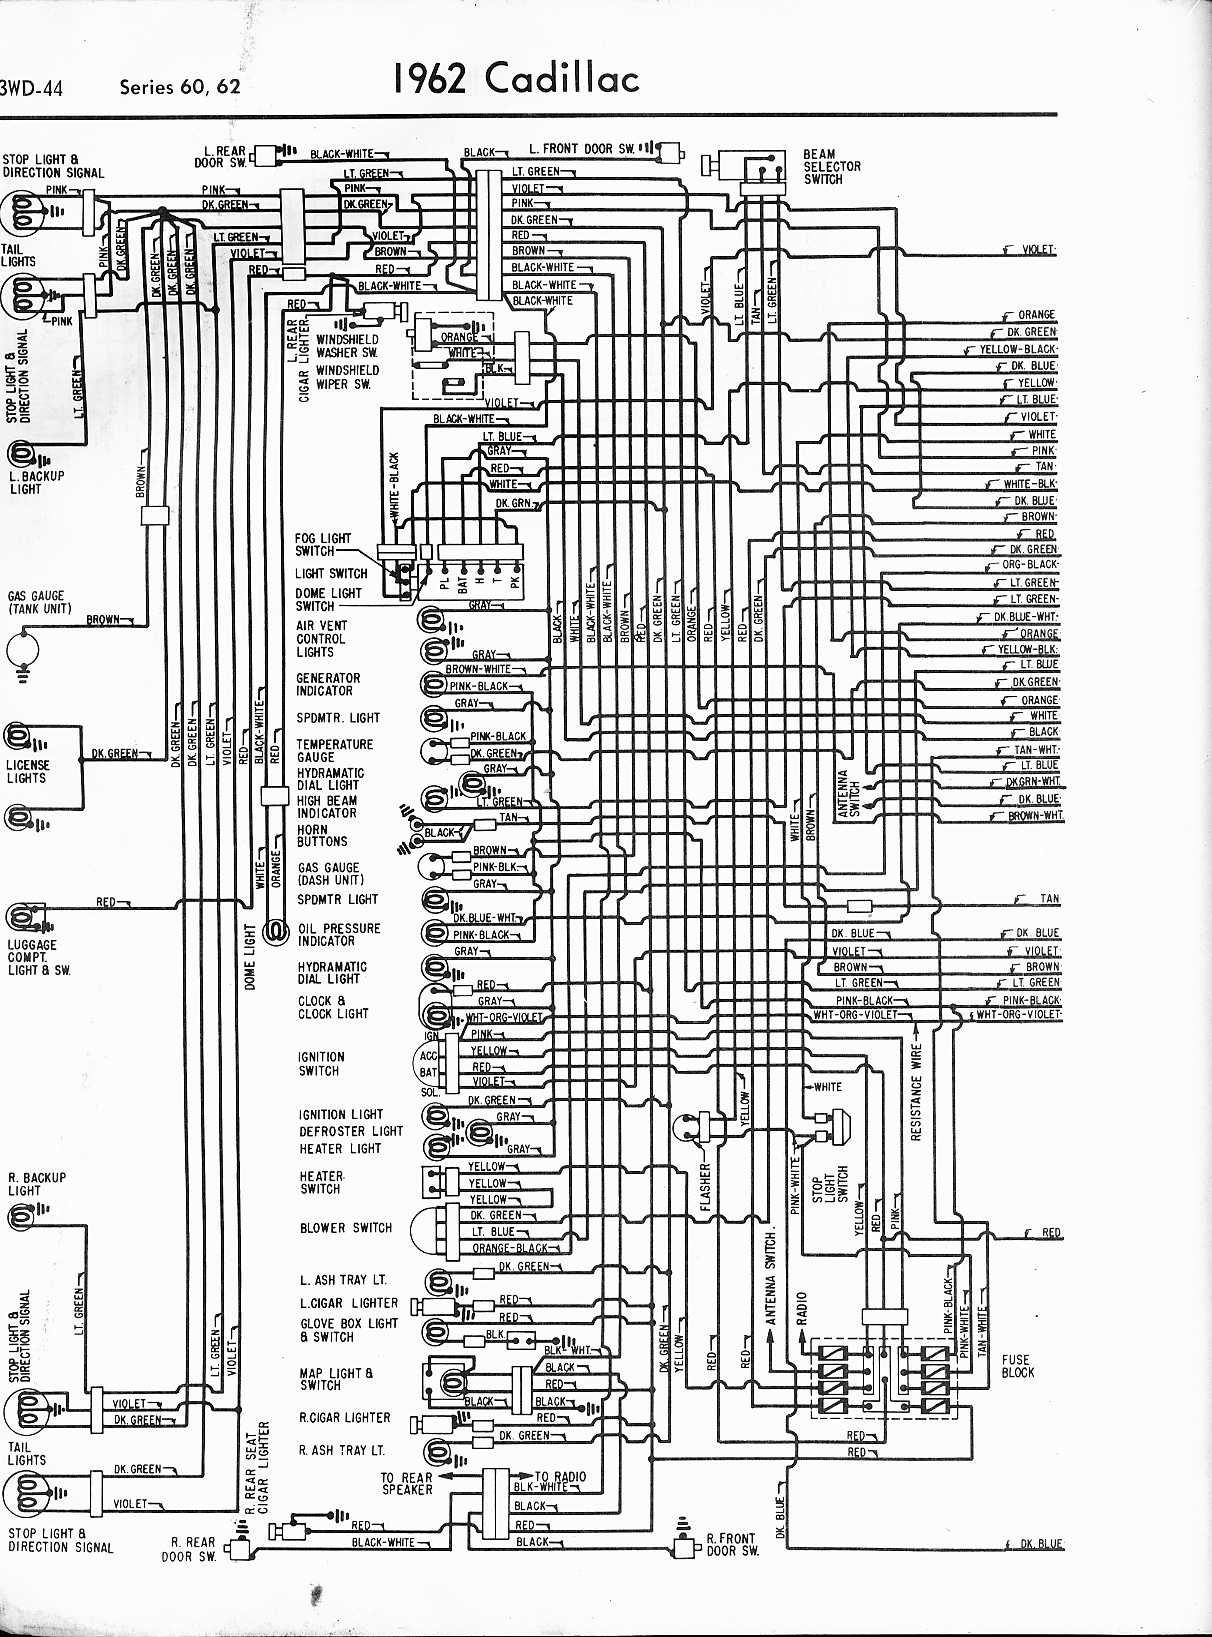 1955 cadillac series 62 wiring diagram example electrical wiring rh olkha co 1965 Cadillac Series 62 1965 Cadillac Series 62